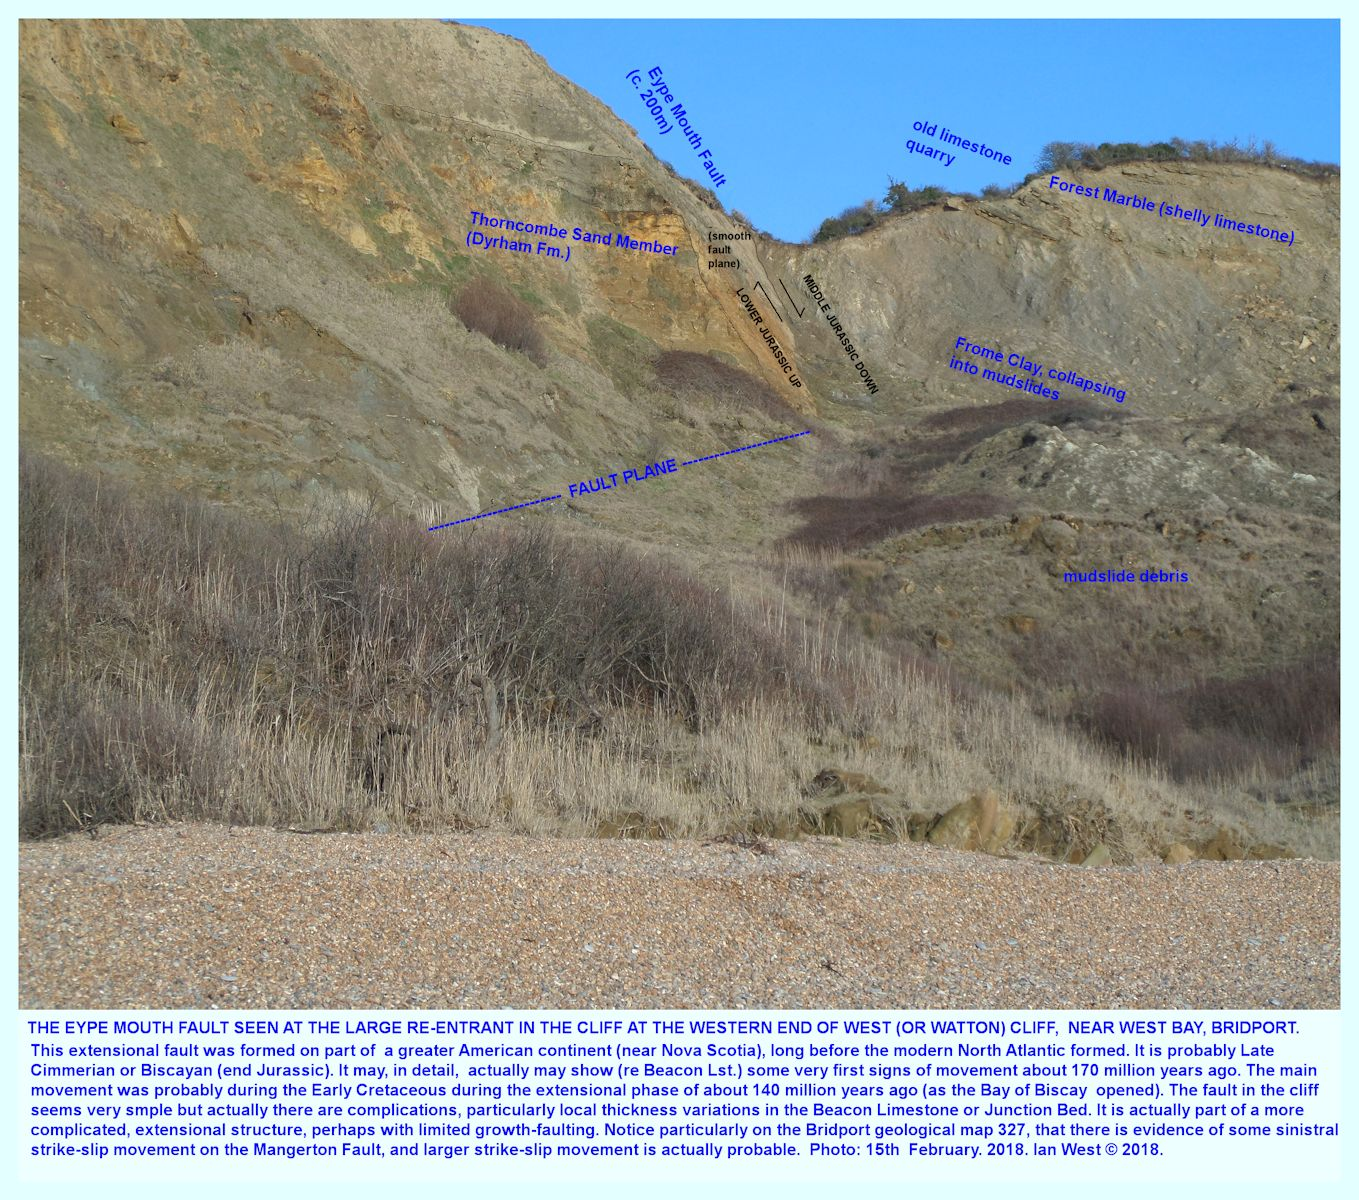 Ana Maria Lepe bridport, west cliff to eype mouth - geologyian west